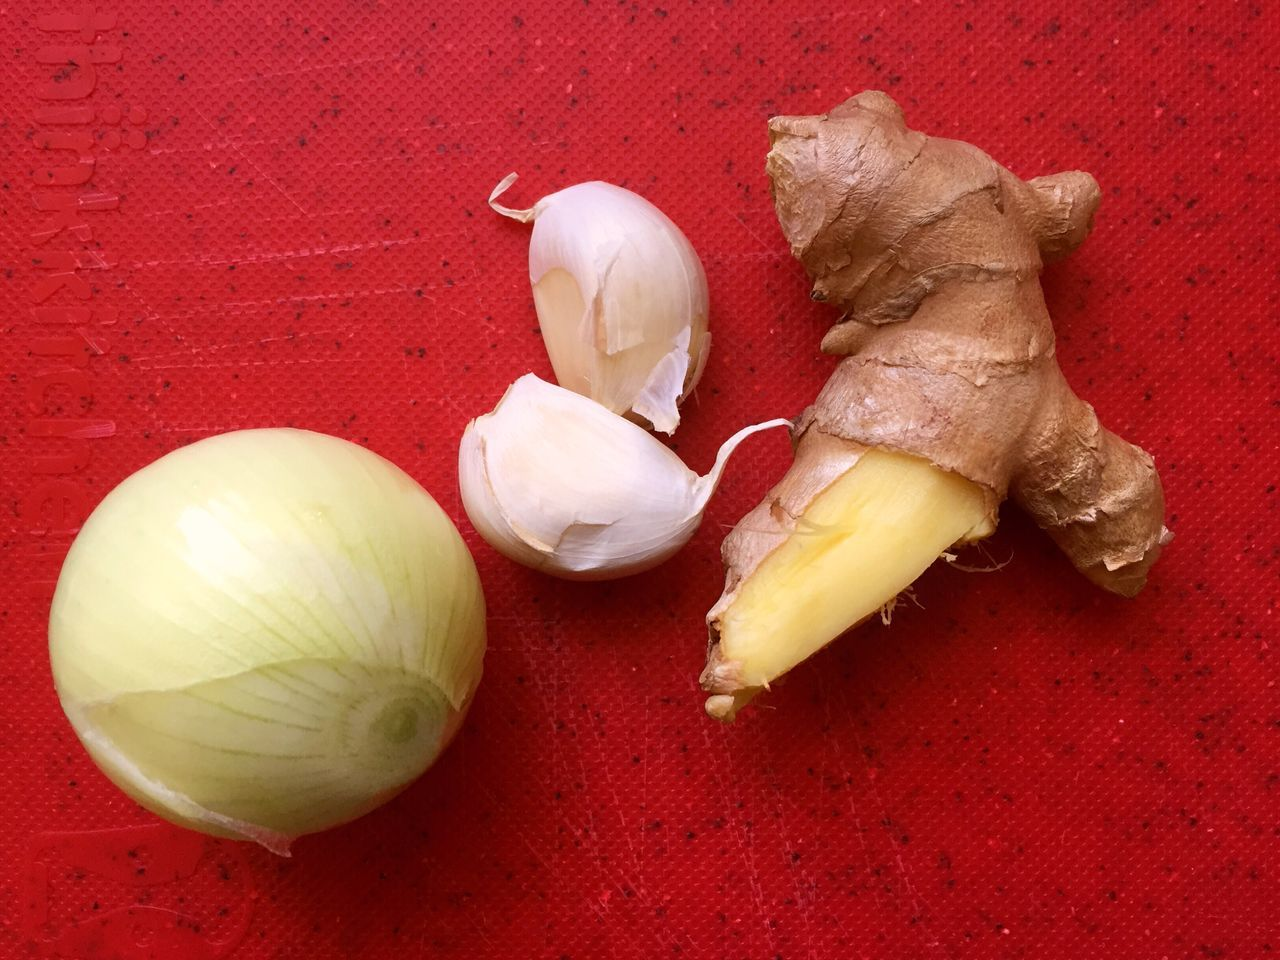 Garlic Food Food And Drink Still Life Garlic Bulb Freshness Healthy Eating Red Indoors  Table Raw Food No People Vegetable Studio Shot Close-up Day Ingredients Asian  Freshly Harvested Autumn Colors Freshness Ready To Cook Onion And Garlic Ginger